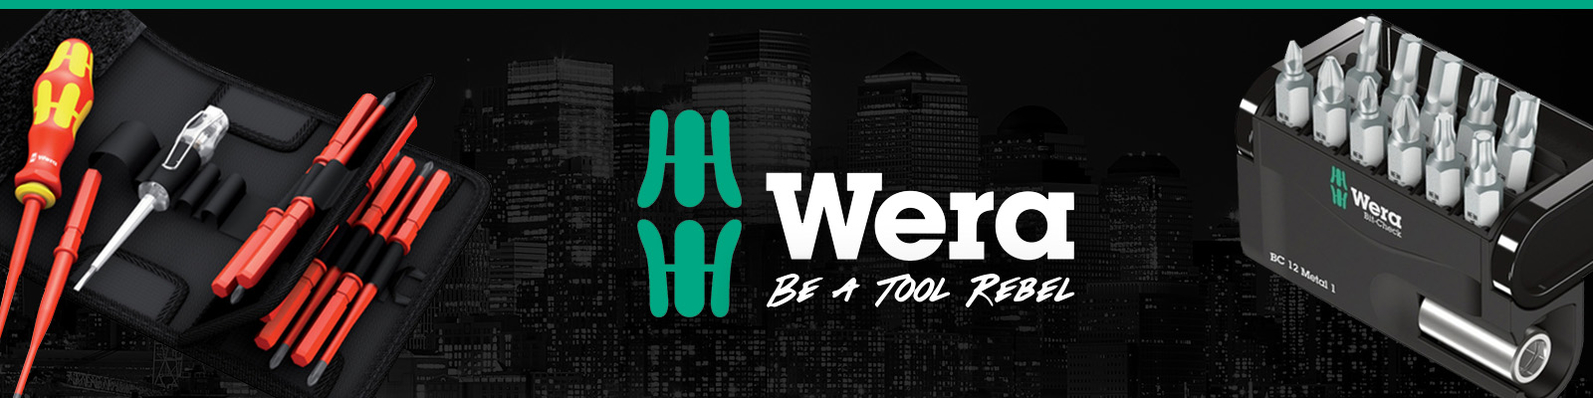 Welcome to the home of Wera